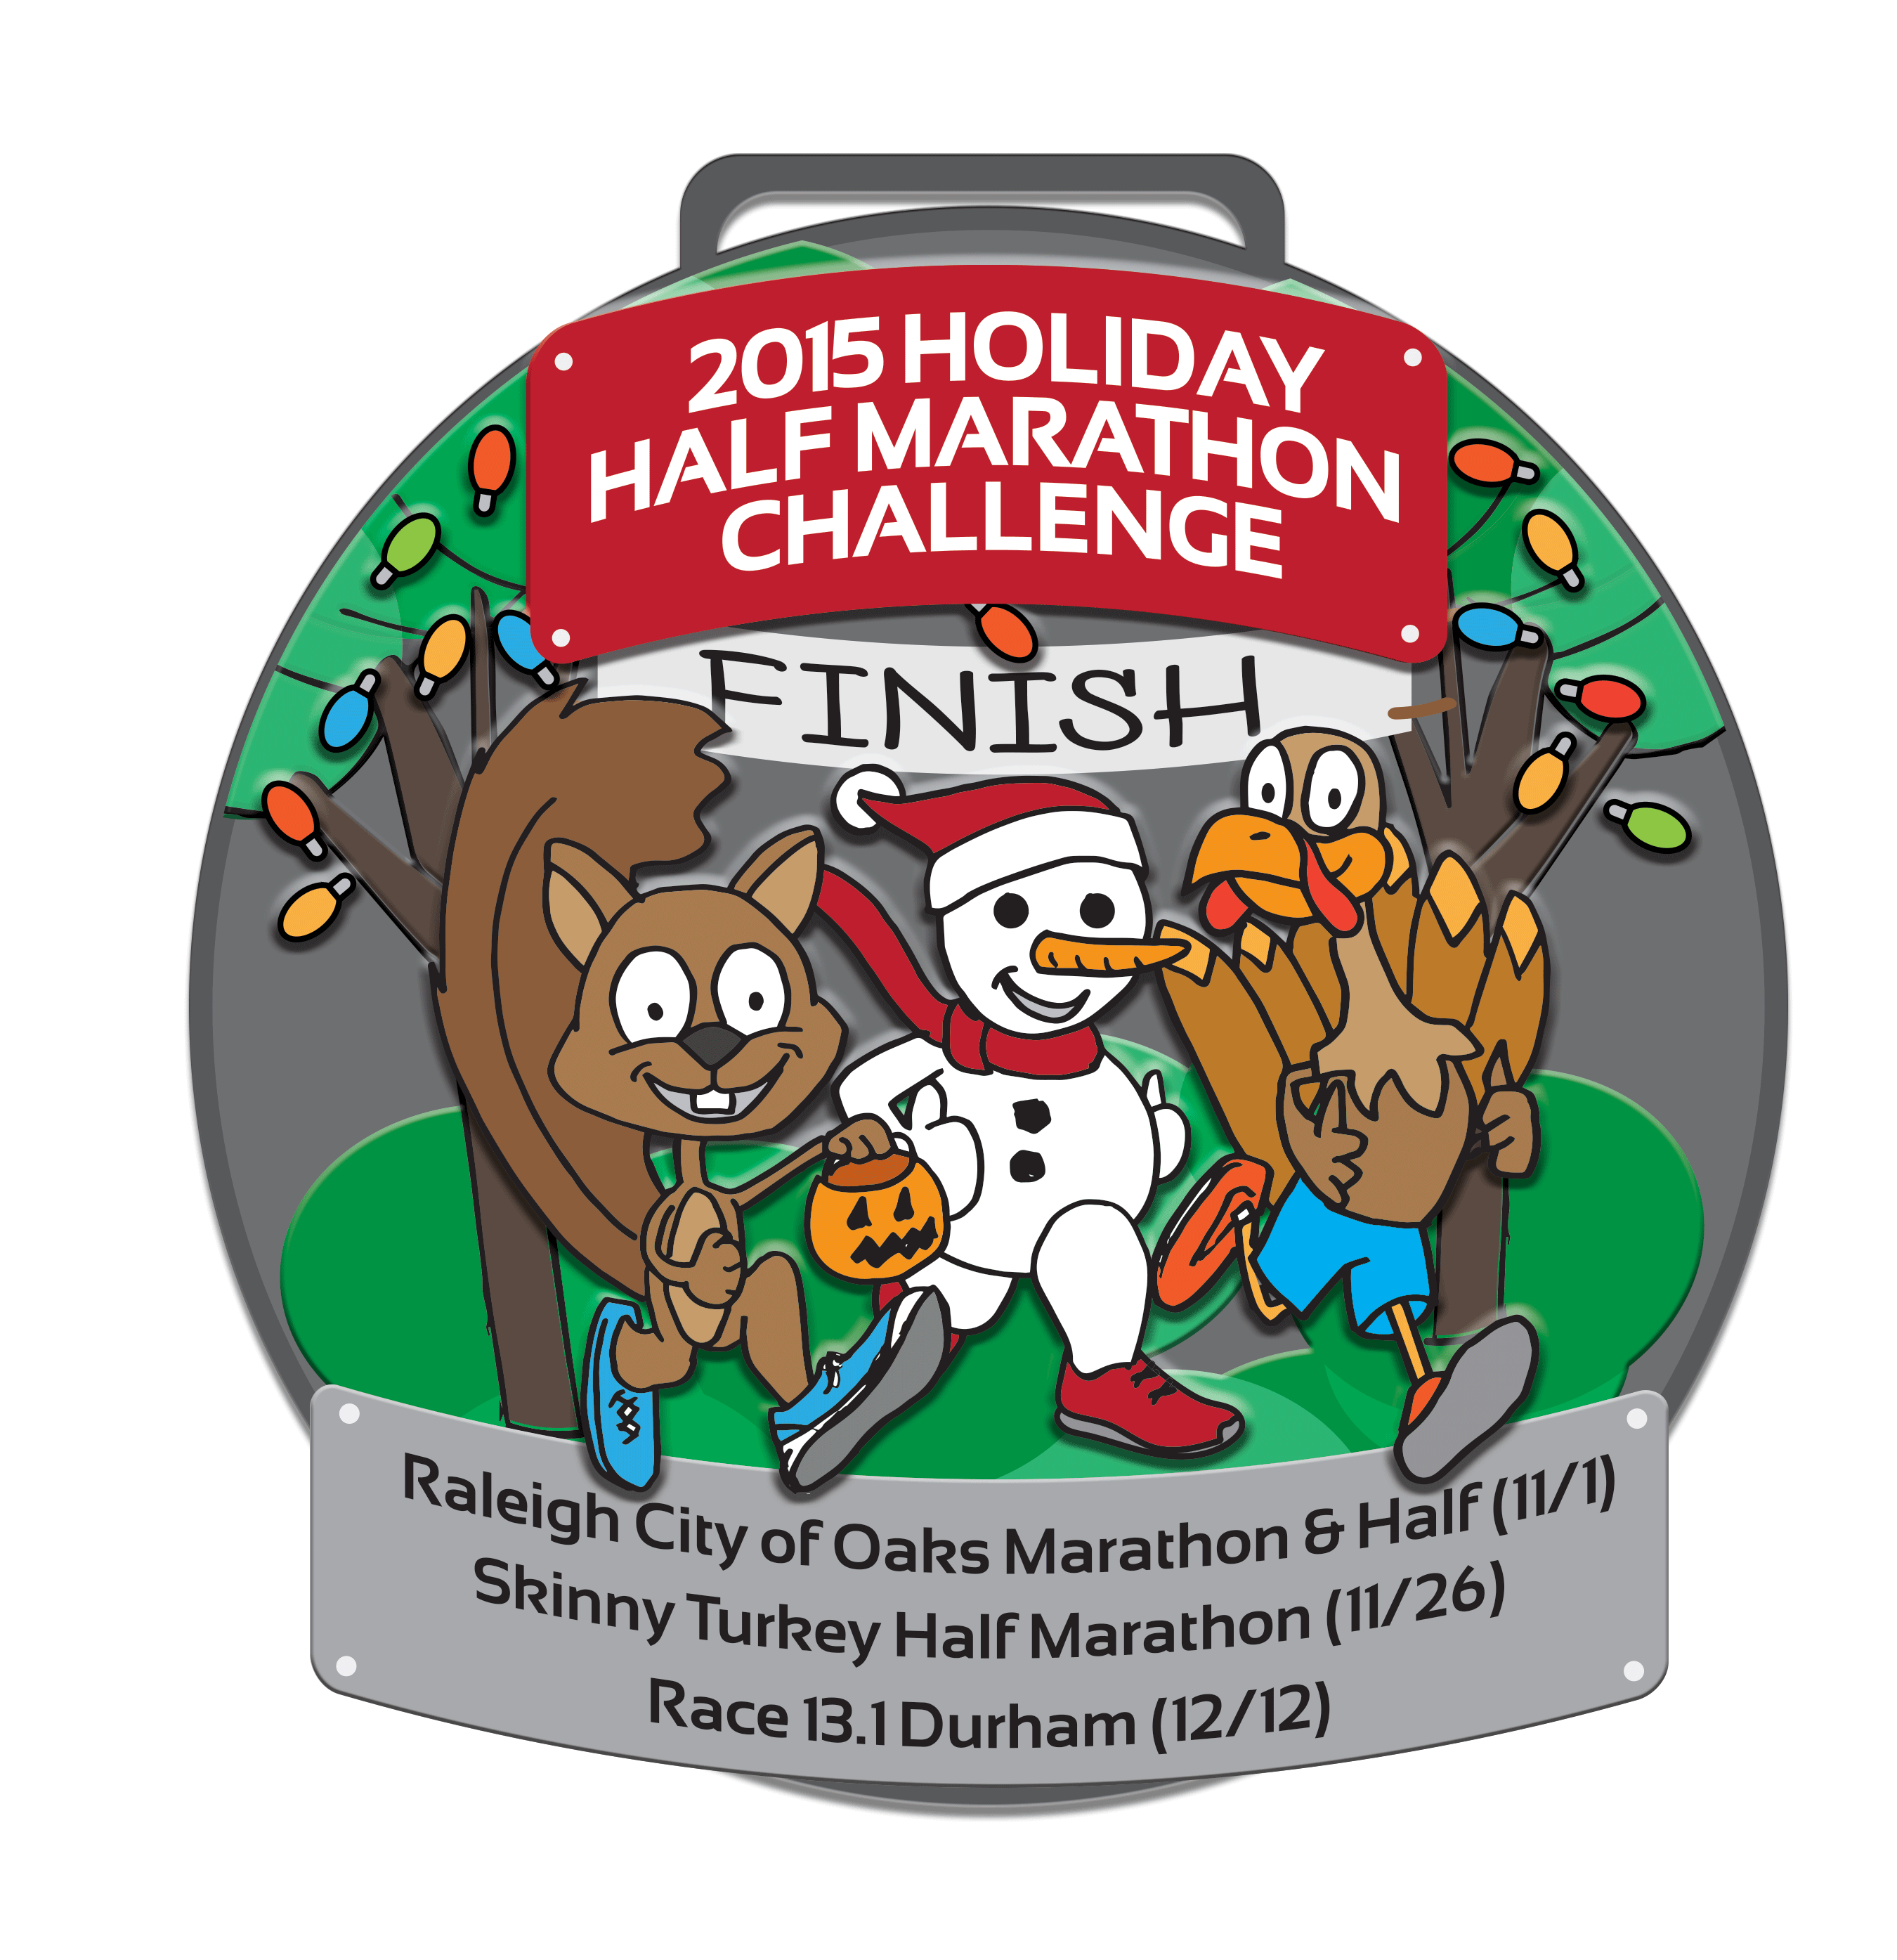 2015 Holiday Half Marathon Challenge - Earn this medal by completing ... image library download